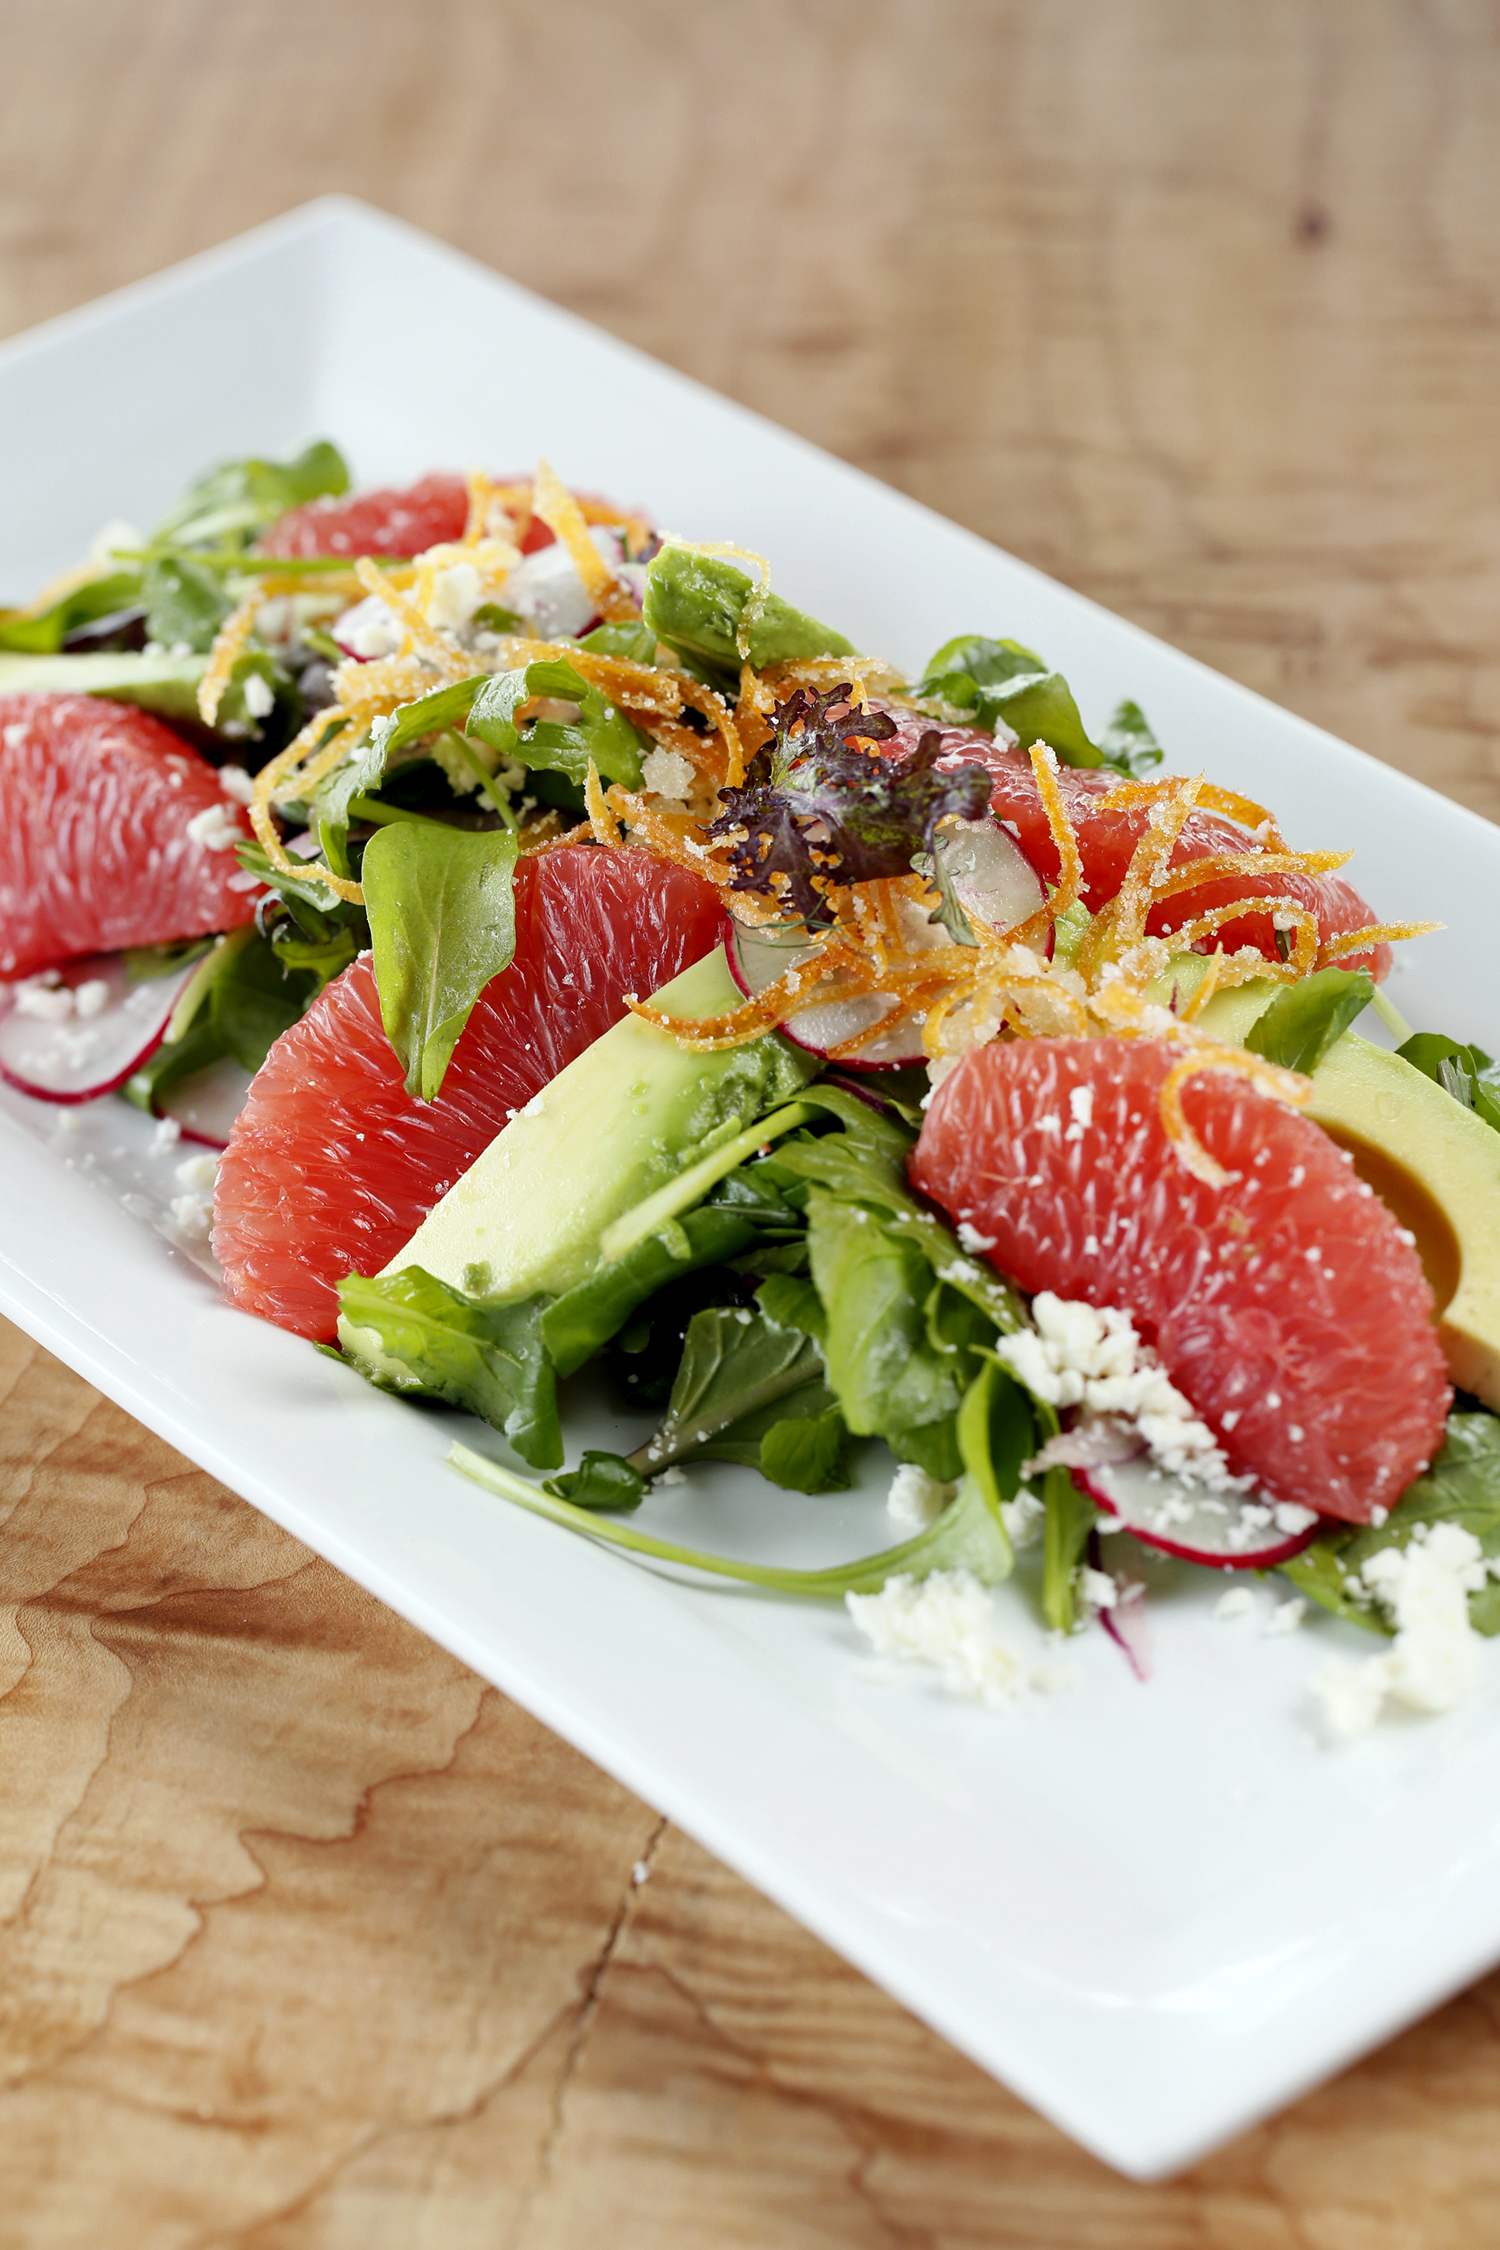 Ruby grapefruit salad with Asian lettuces and candied grapefruit zest at Tinker Street. (Courtesy of Tinker Street)